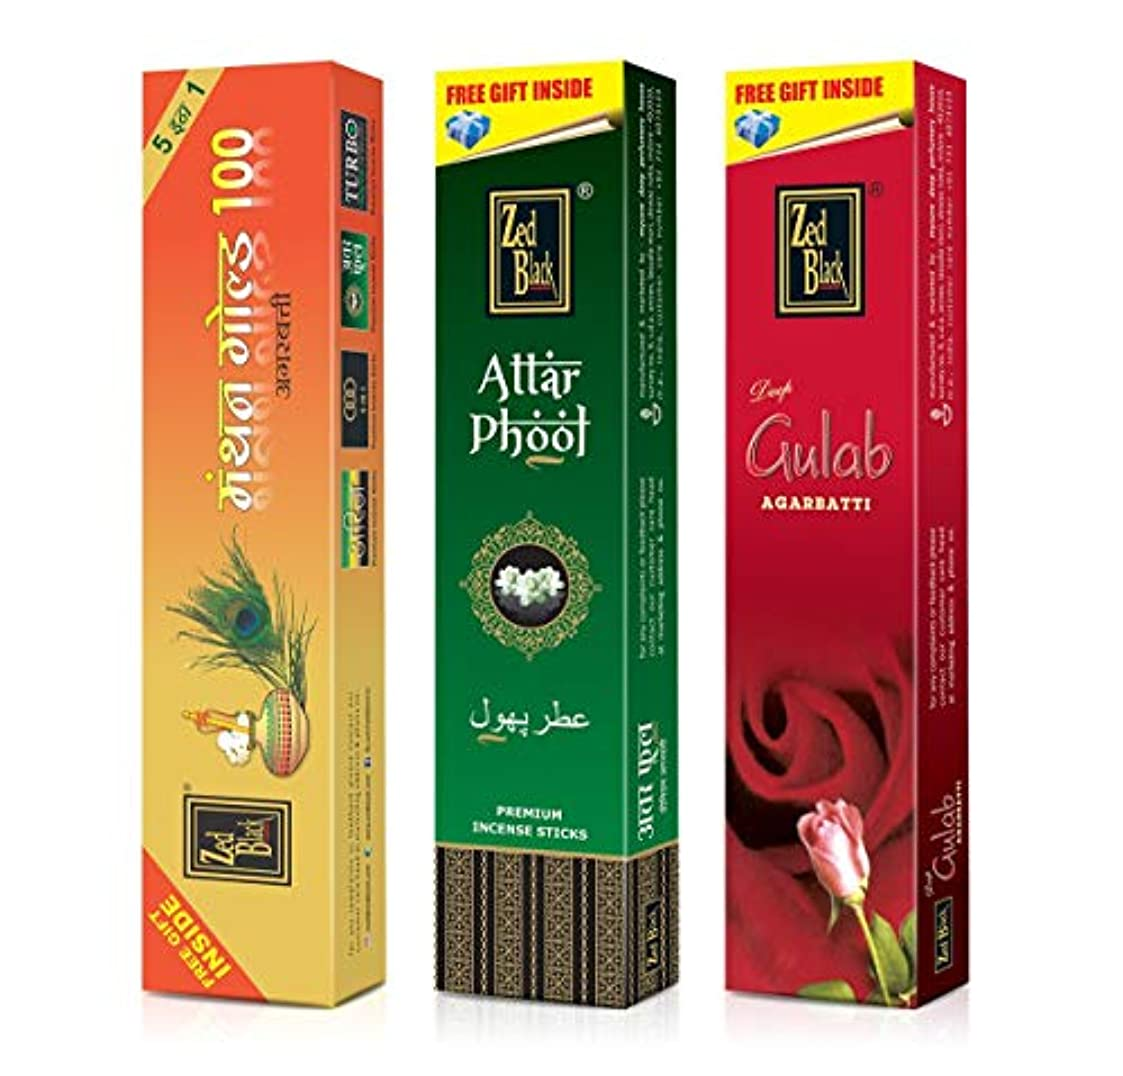 お茶怒って免除Zed Black Incense Sticks Combo of Manthan Gold 100, Attar Phool & Deep Gulab